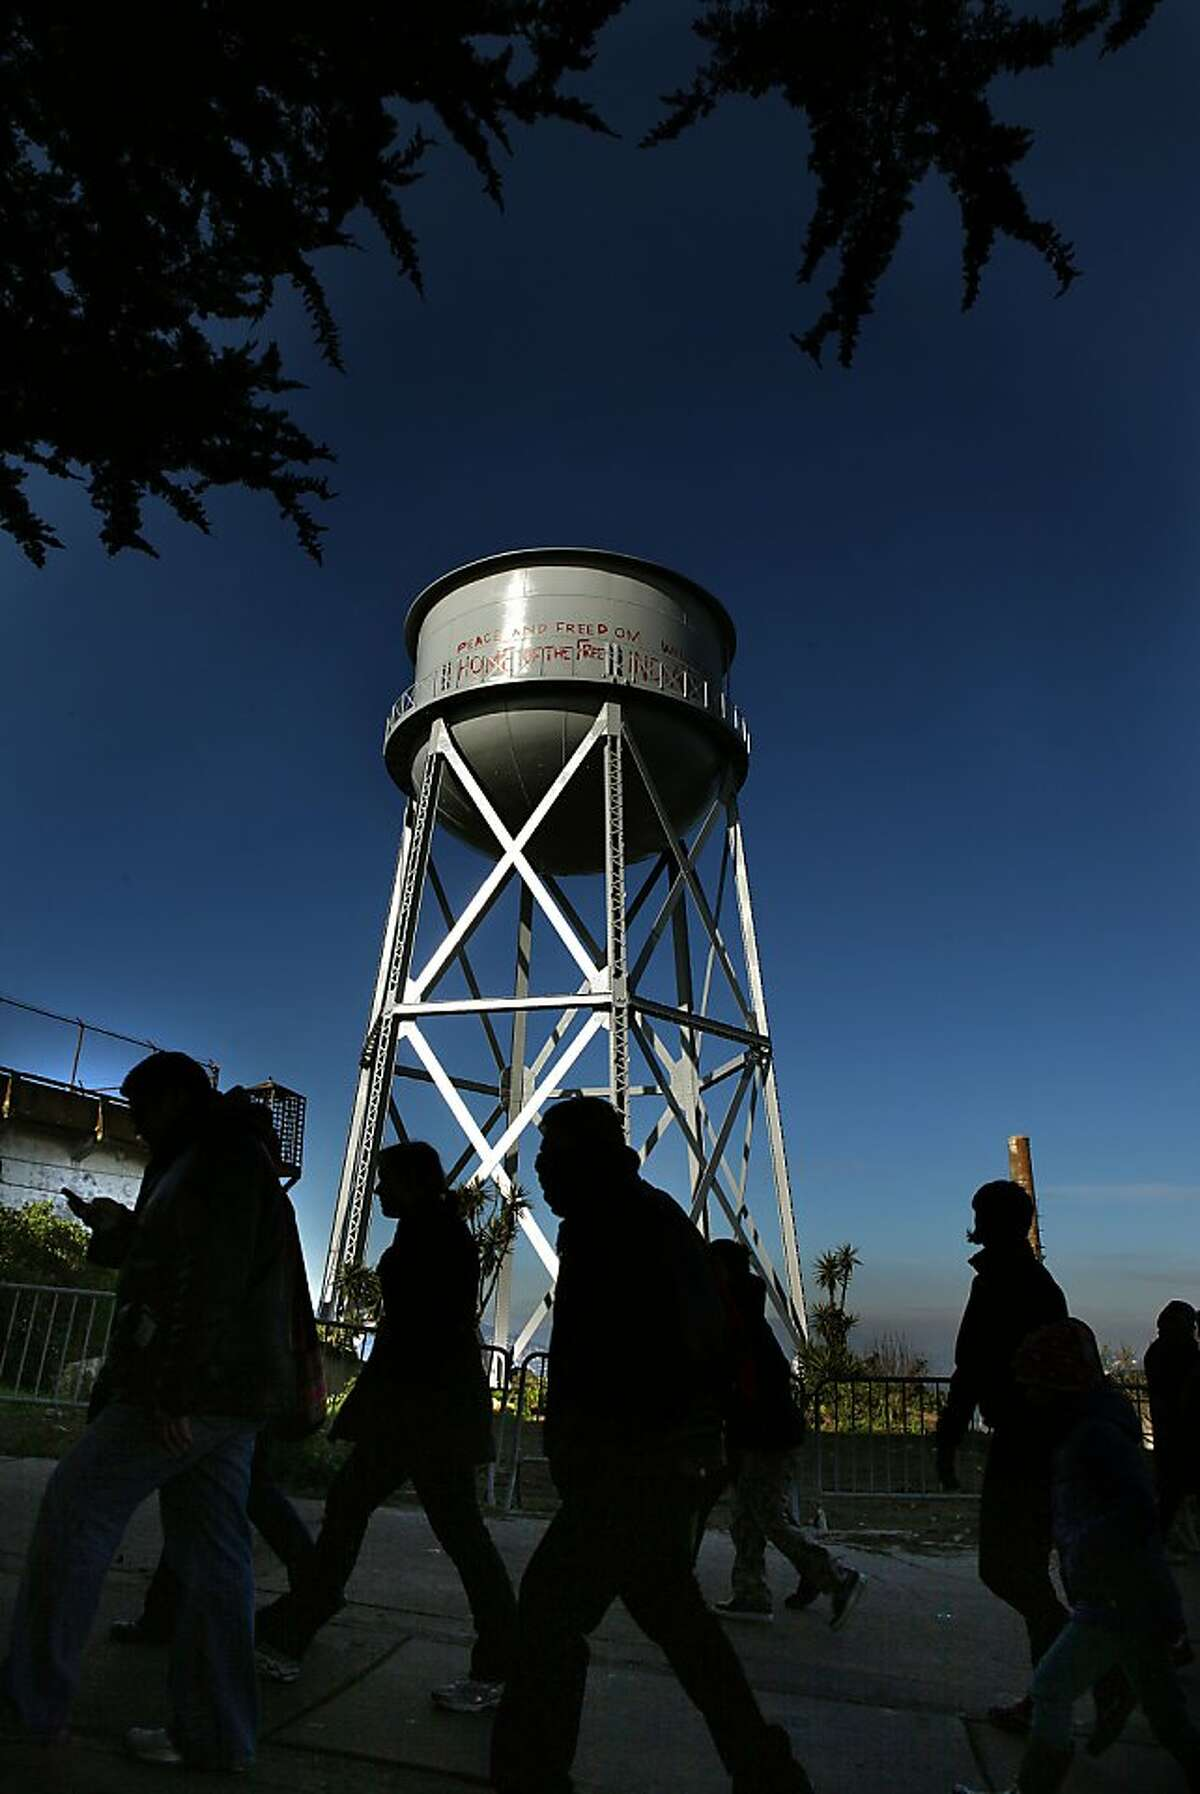 Tourists passing the restored water tank on Alcatraz in San Francisco, California, on Thursday, January 3, 2013. The National Park service has restored the grafitti the American Indians had placed on the landmark water tank on Alcatraz during their occupation in the sixties.